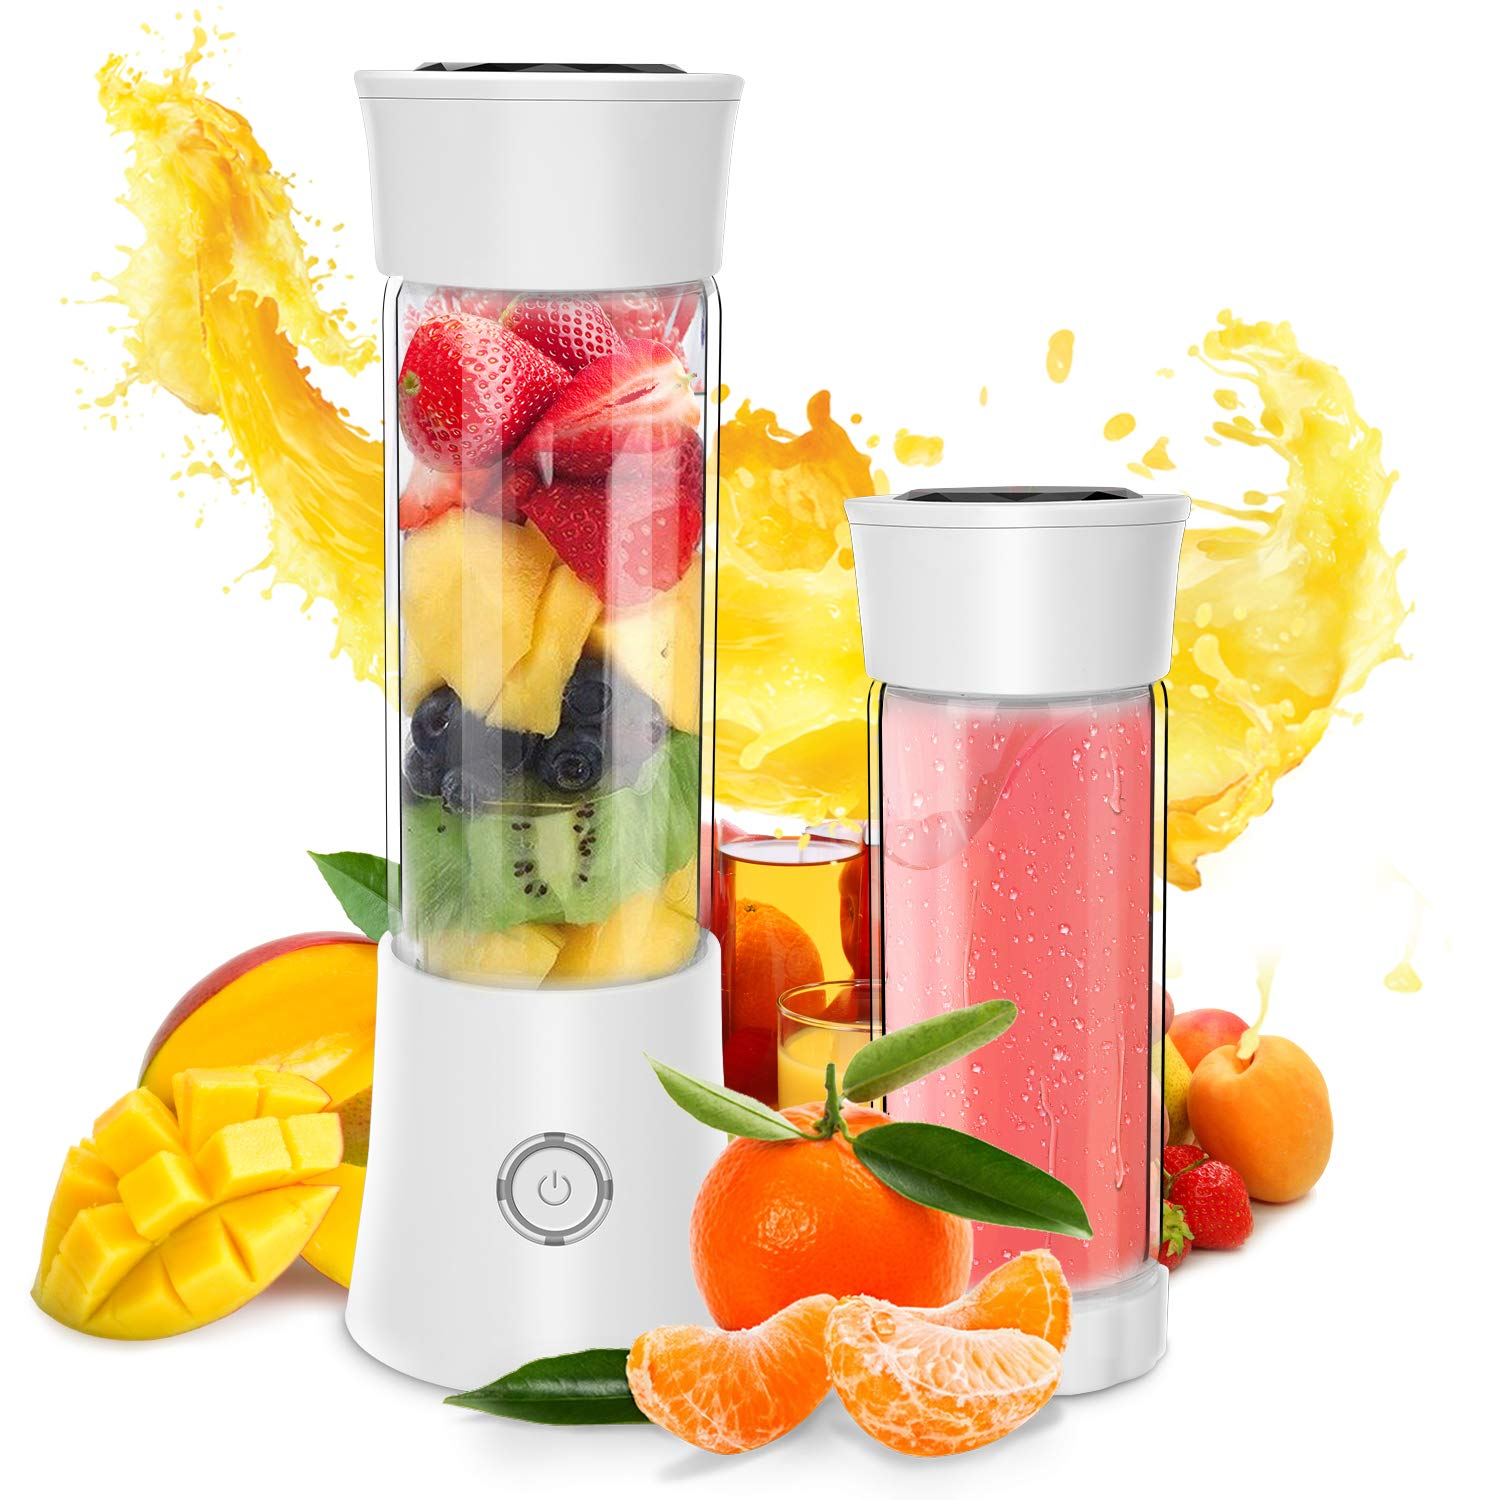 Portable Blender, Personal Smoothie and Shake Blender, Mini Blender, Electric Shaker Bottle with USB Rechargeable for Travel Outdoor and Home Kitchen (FDA, BPA free) by dapai